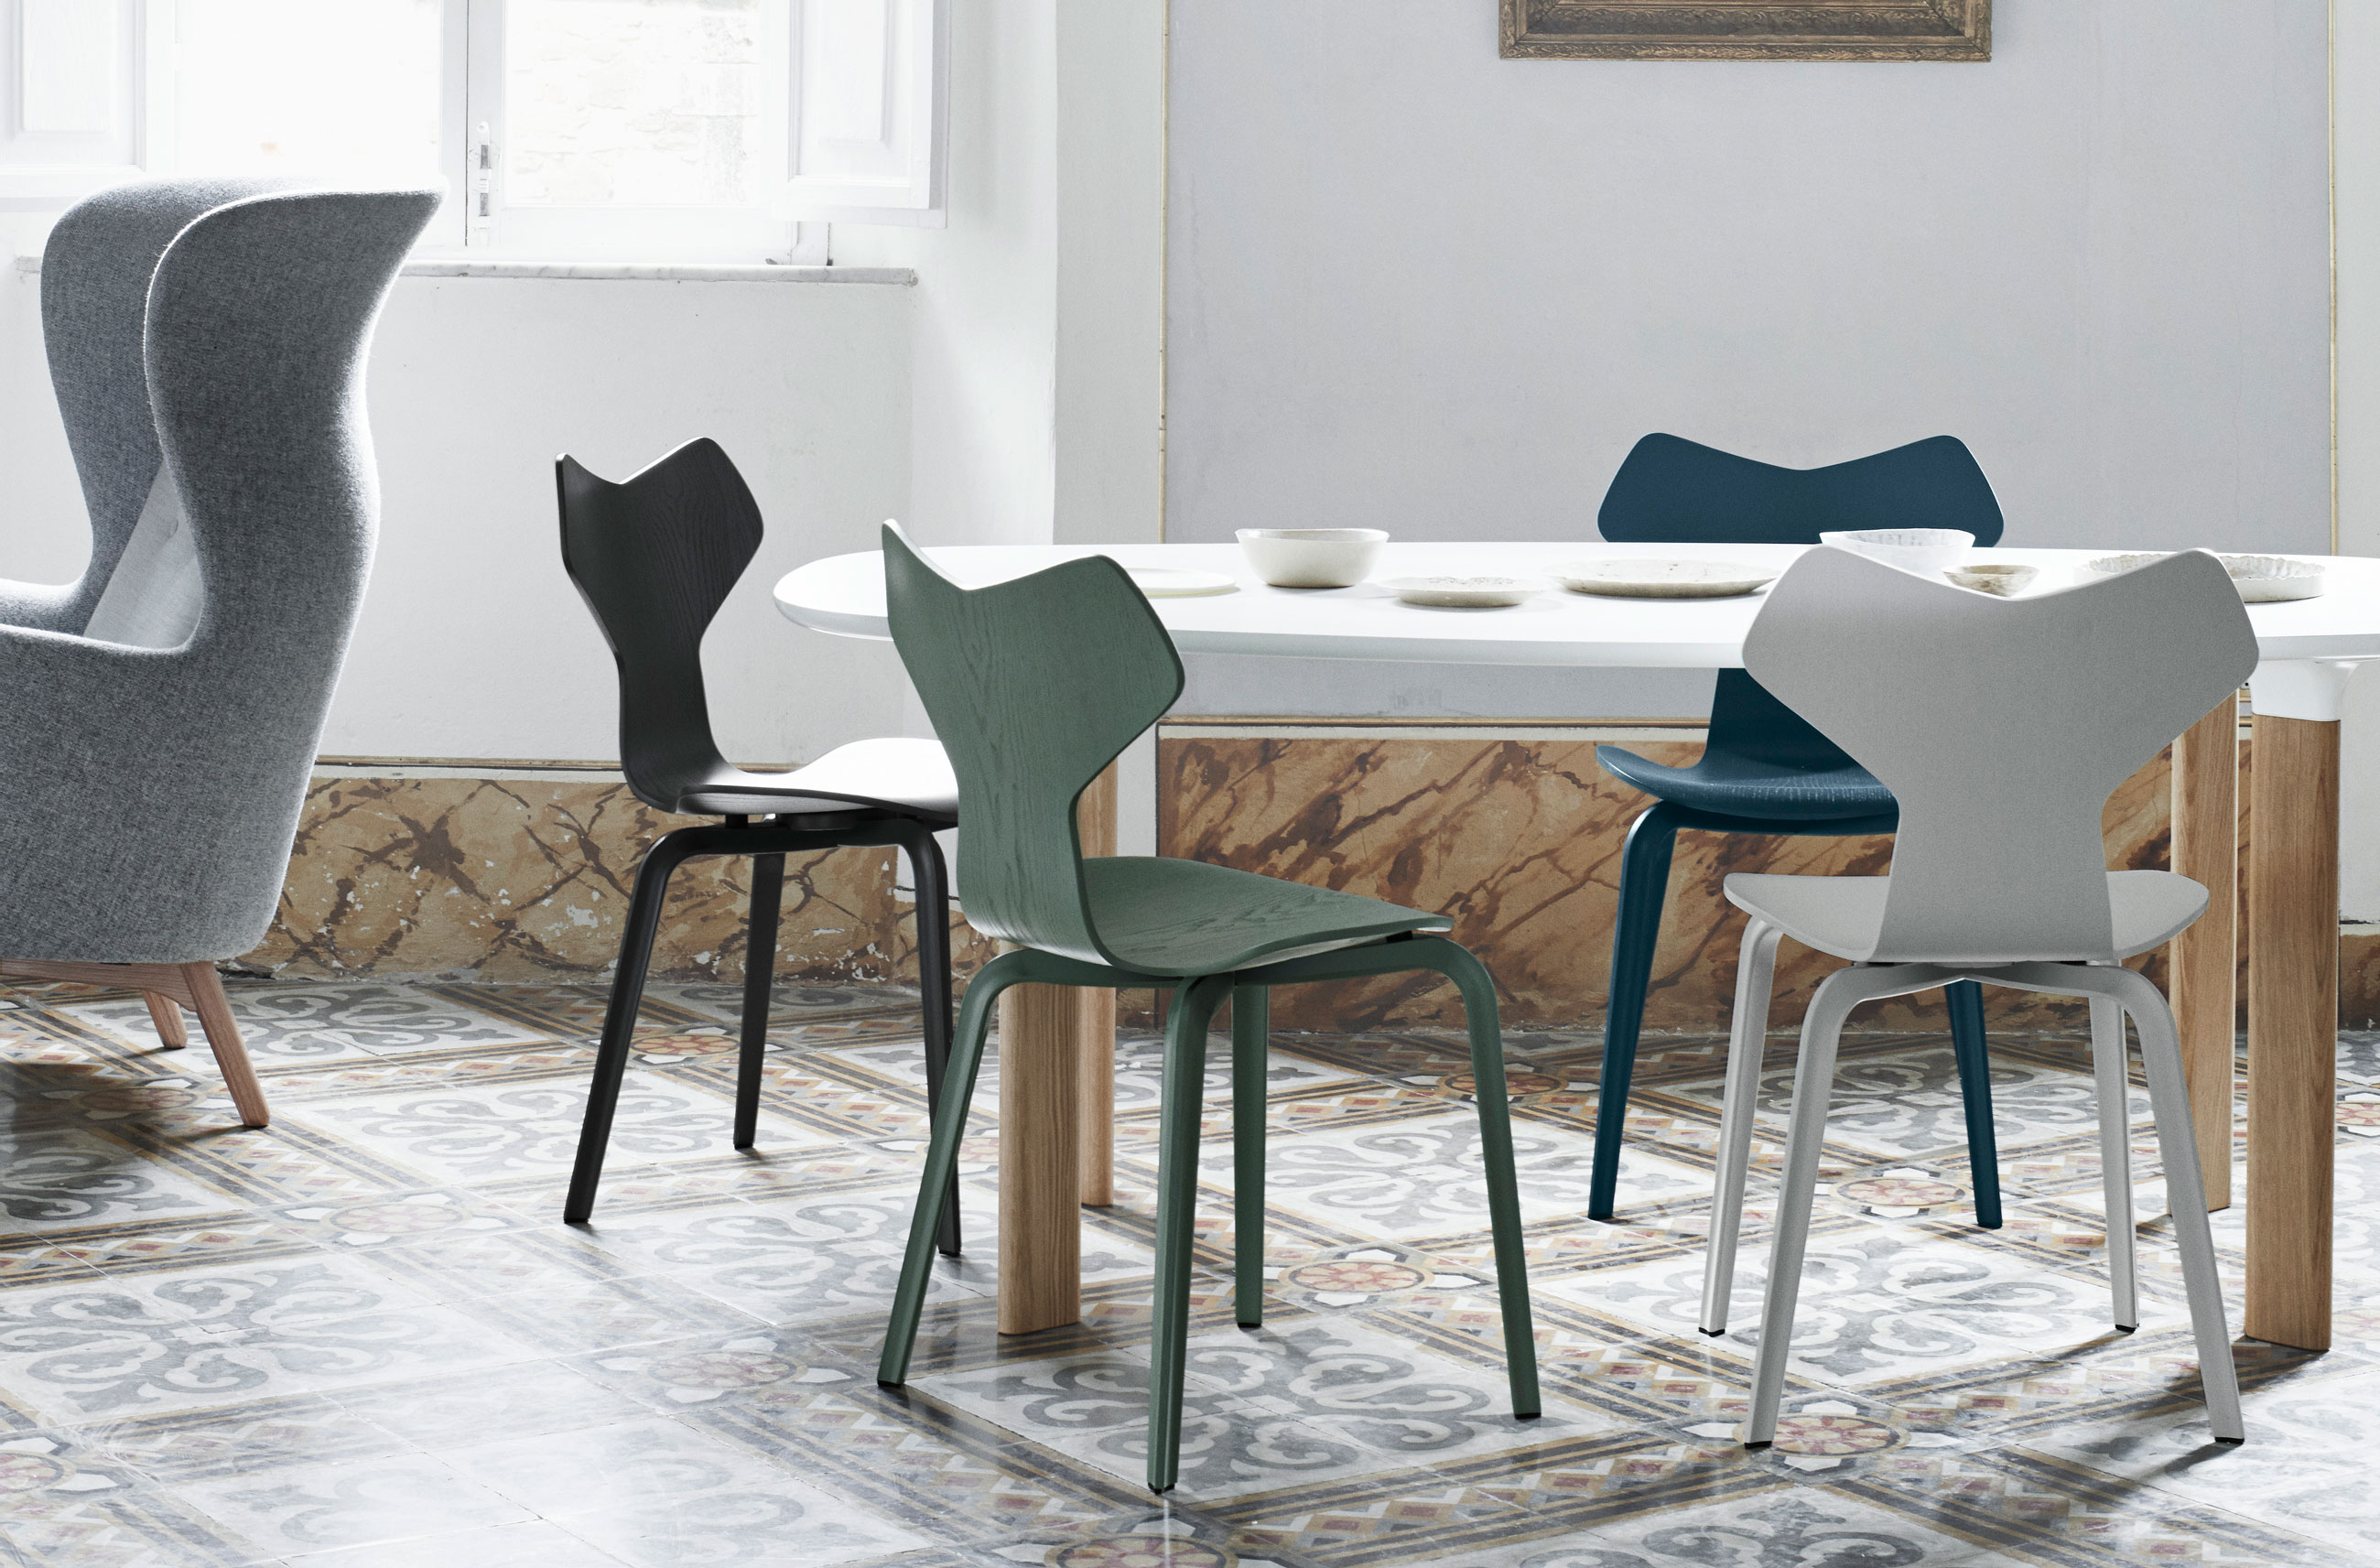 Fritz Hansen Analog Dining Table JH63 White Laminate and Oak Base with Grand Prix Chairs